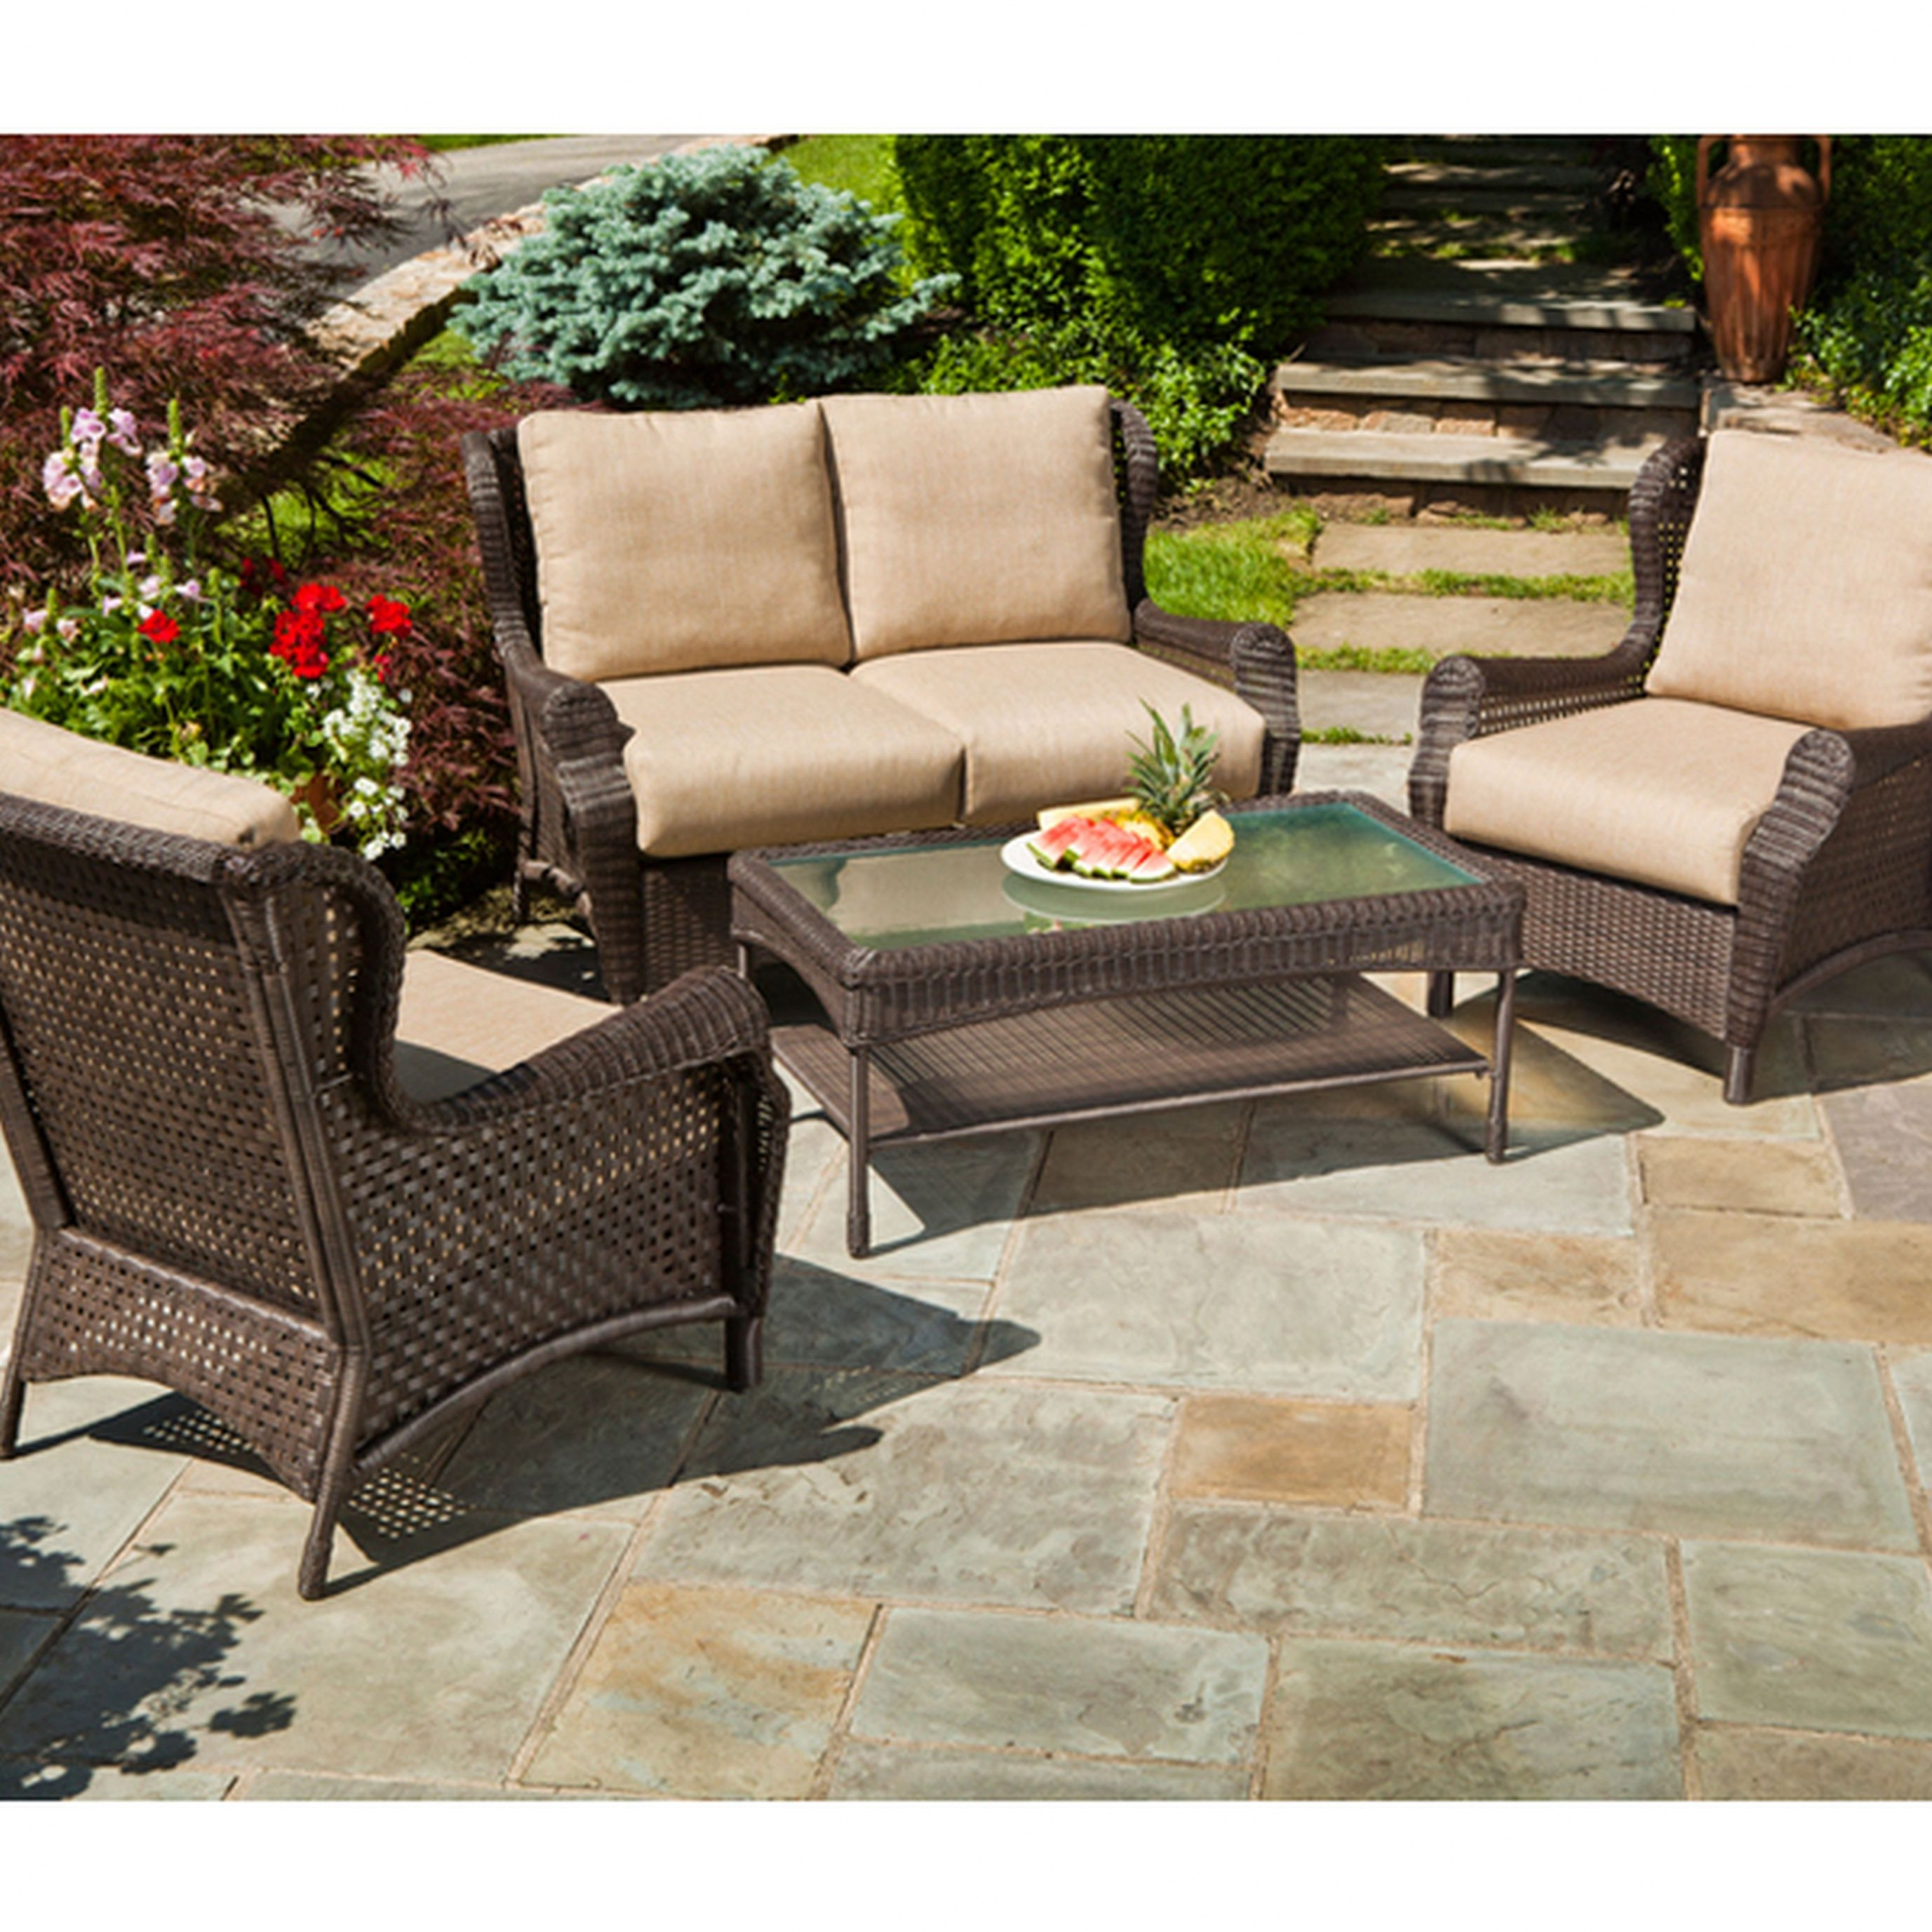 Jcpenney Outdoor Furniture Clearance Best Paint For Furniture Layjao